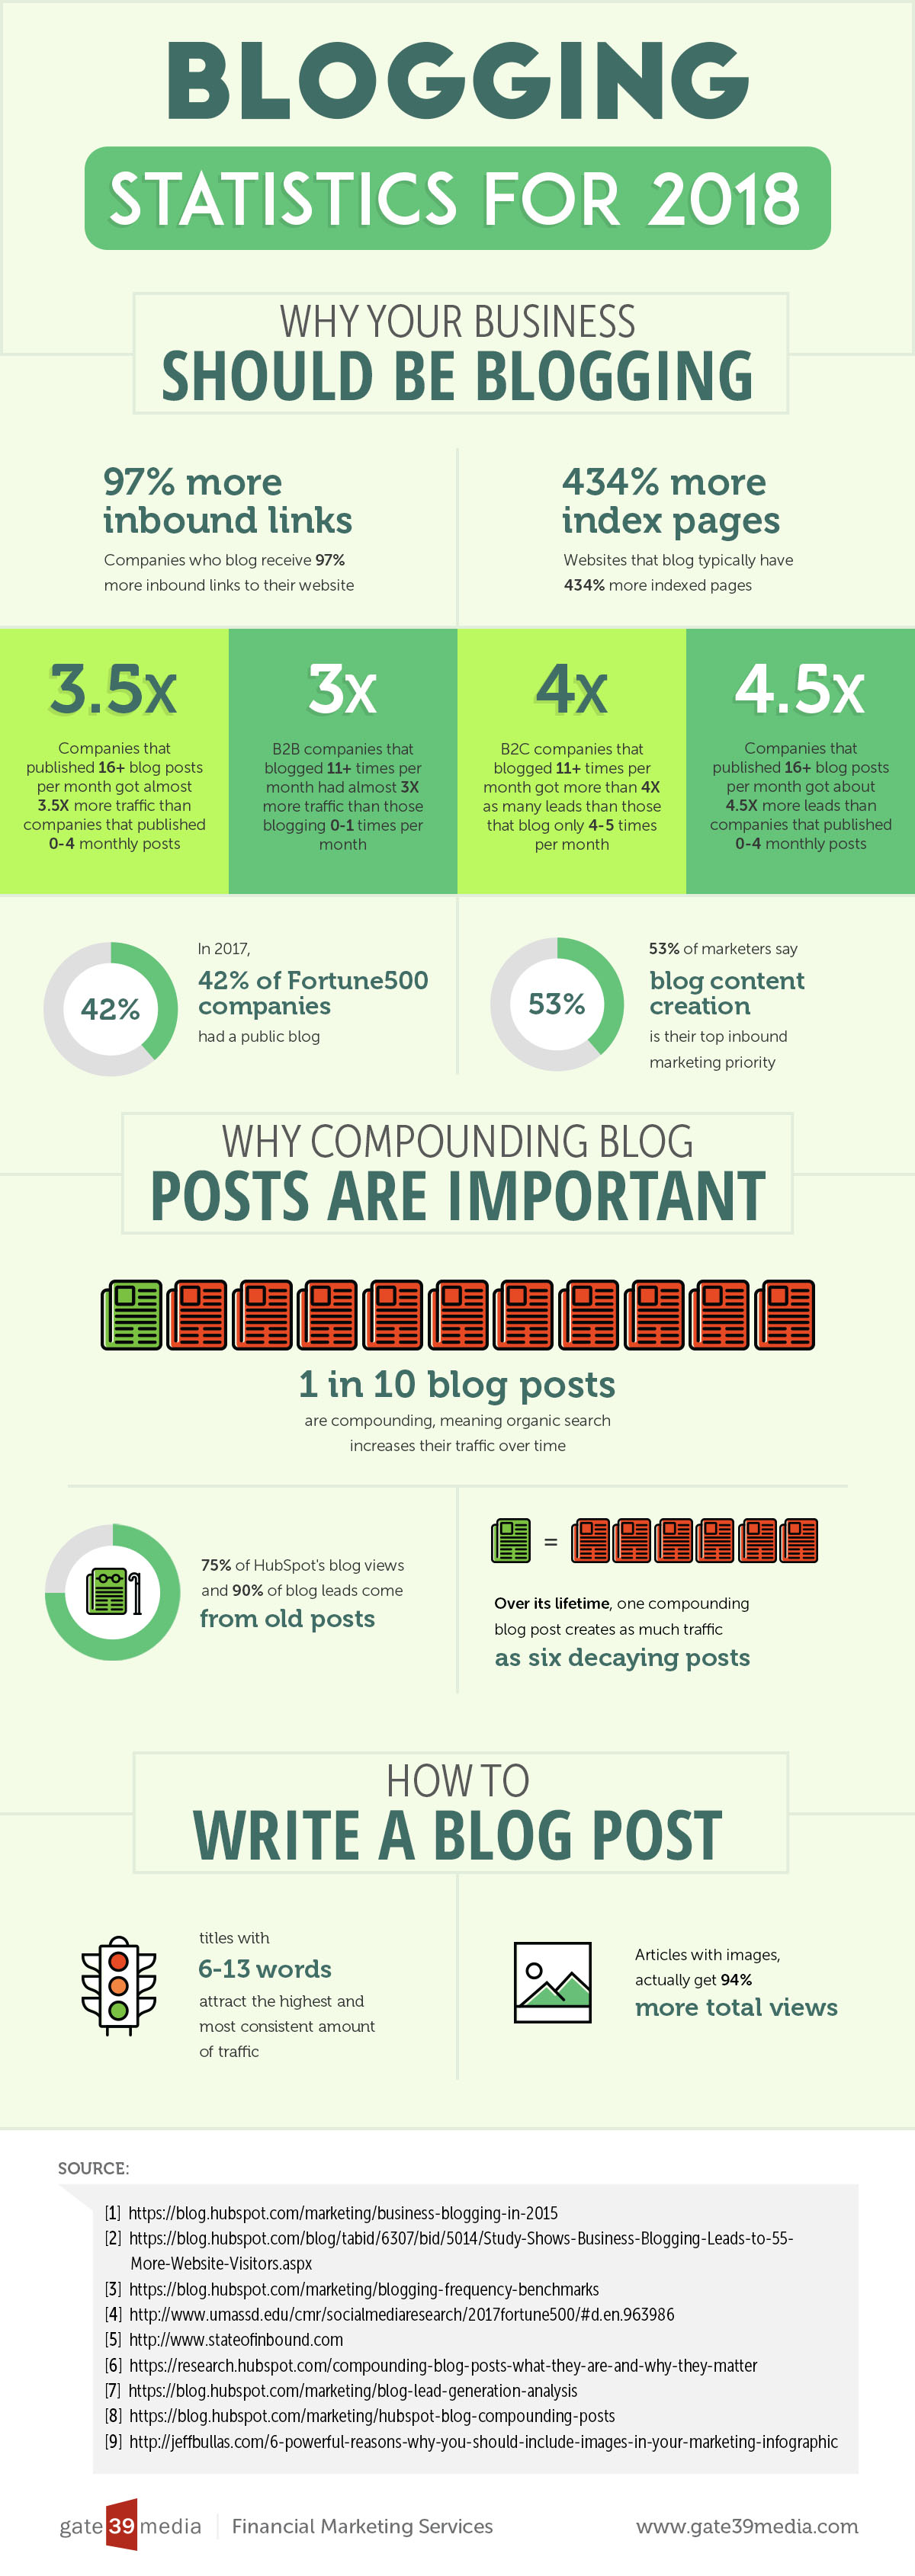 Blogging Statistics for 2018 - Why Your Company Should Be Blogging